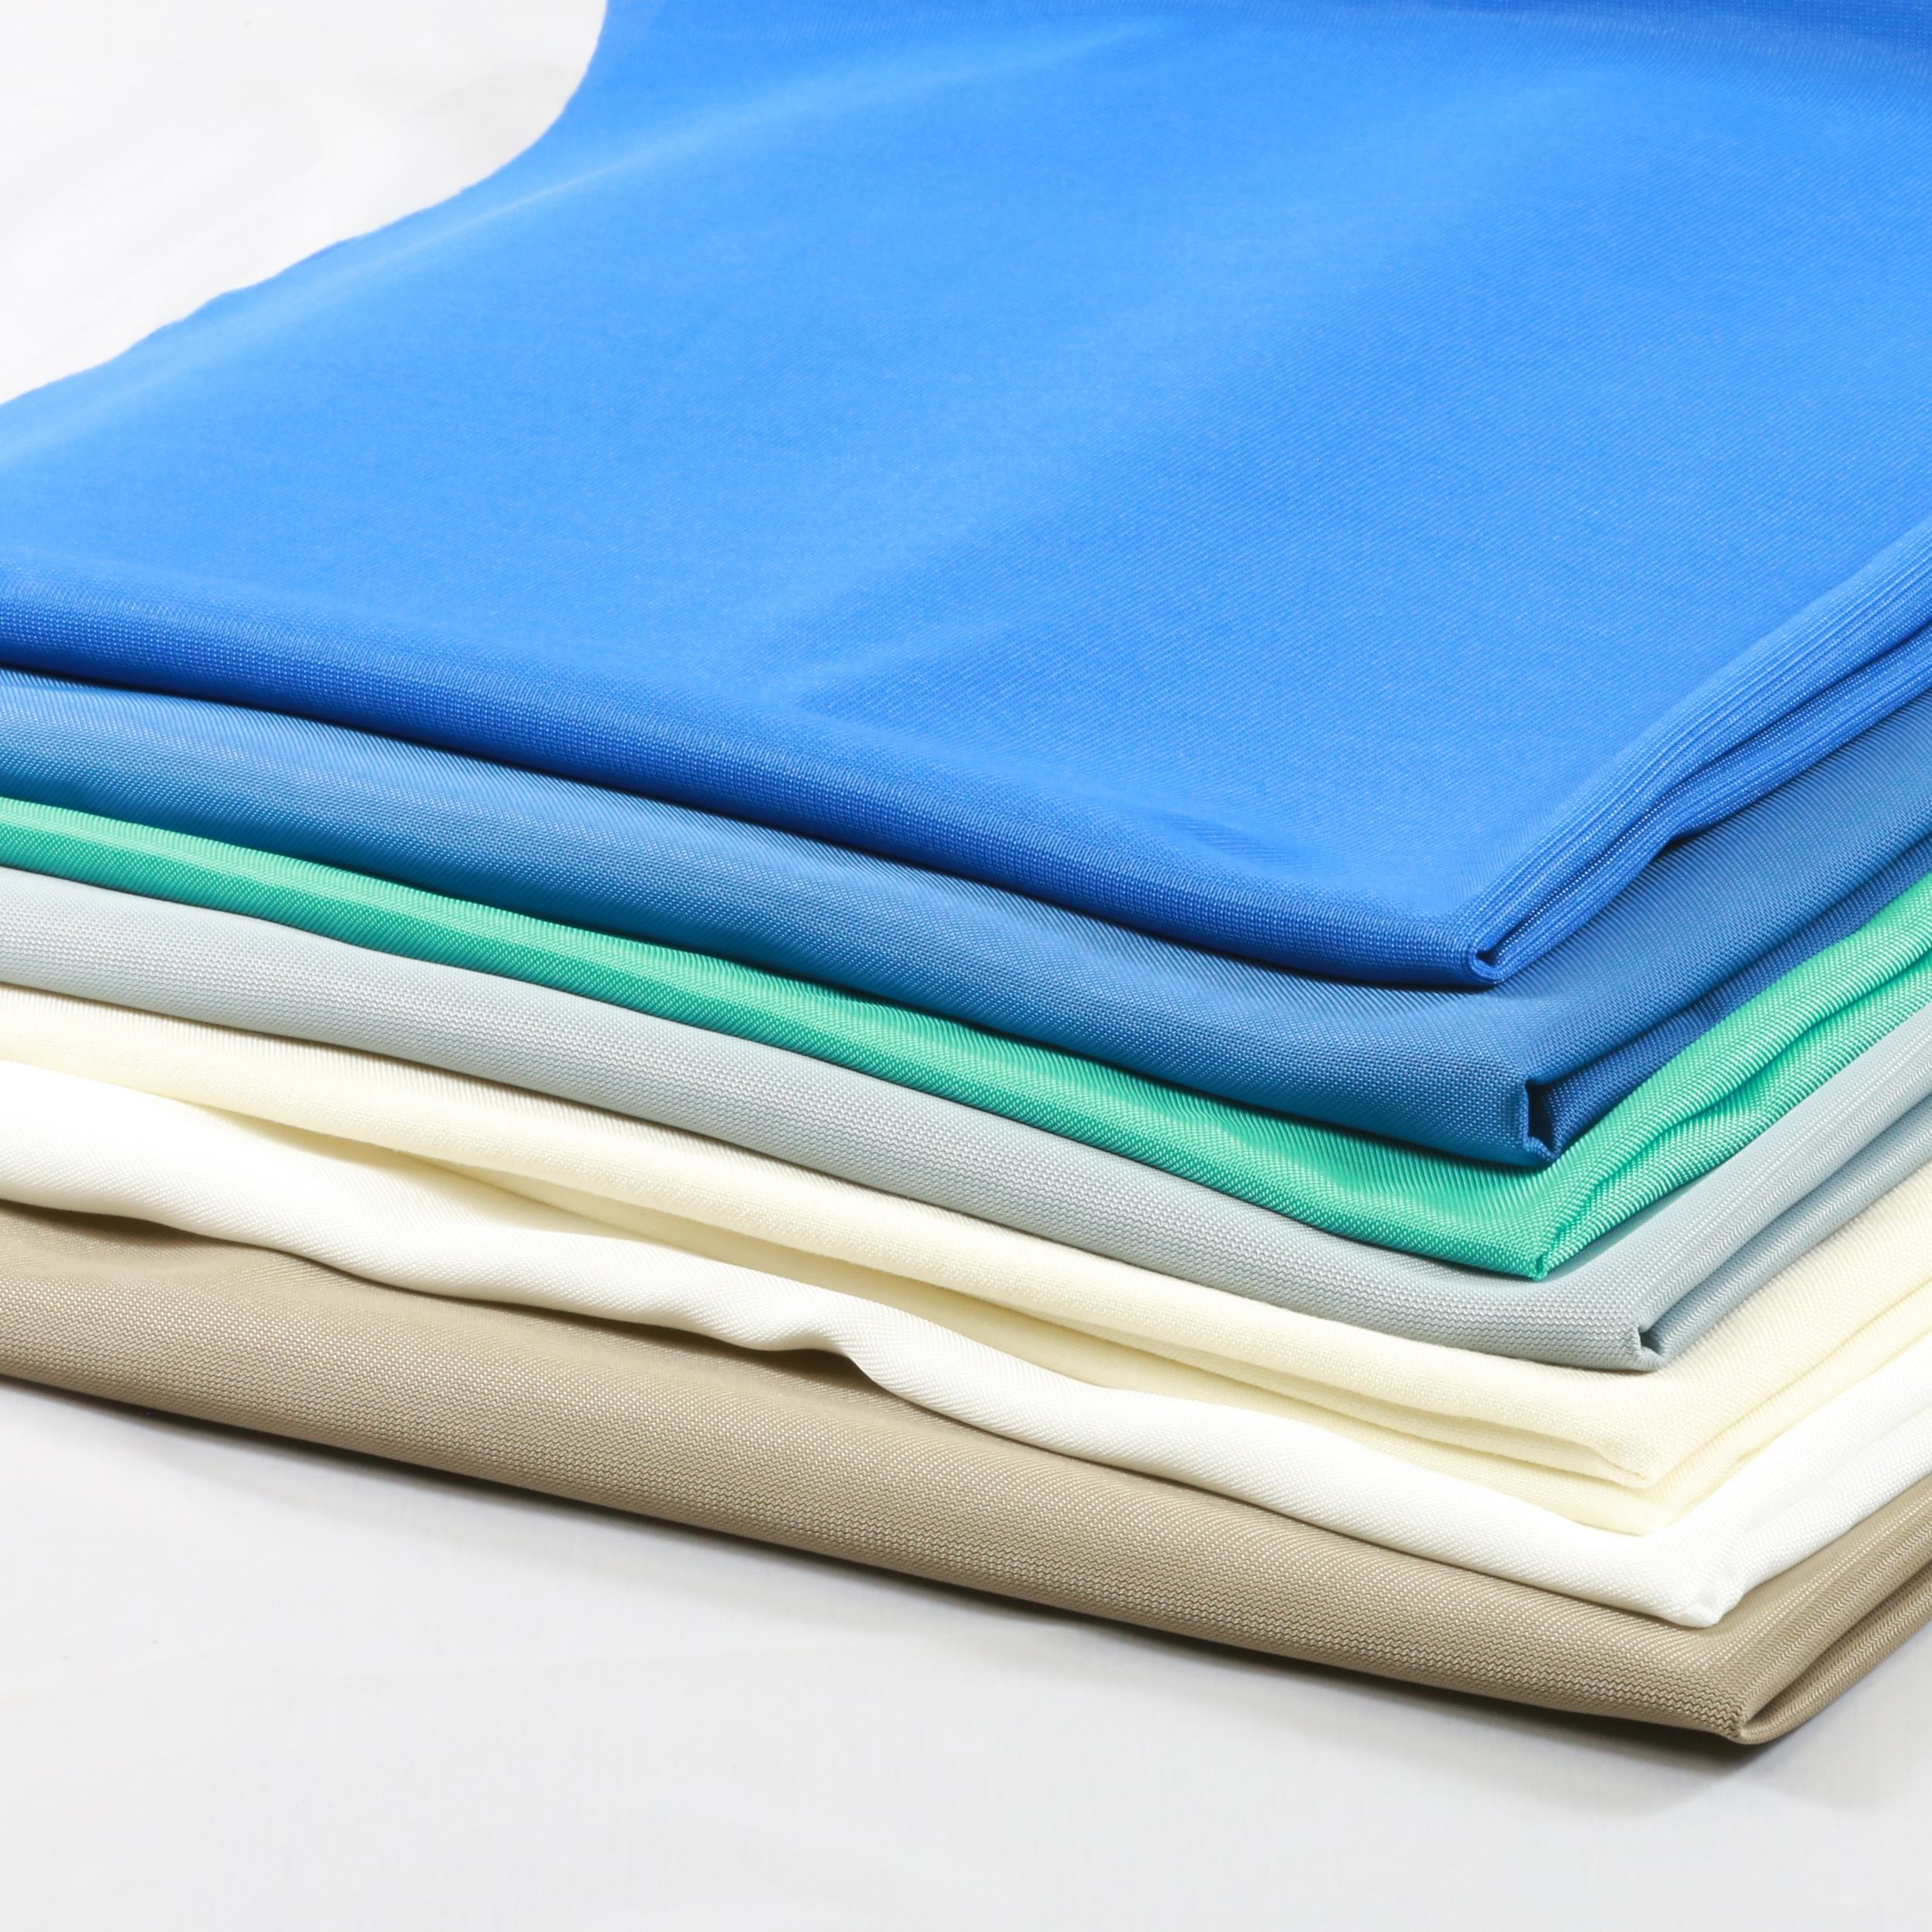 Excellent steam penetration clothing material fabric stretch fabric covering for ironing table